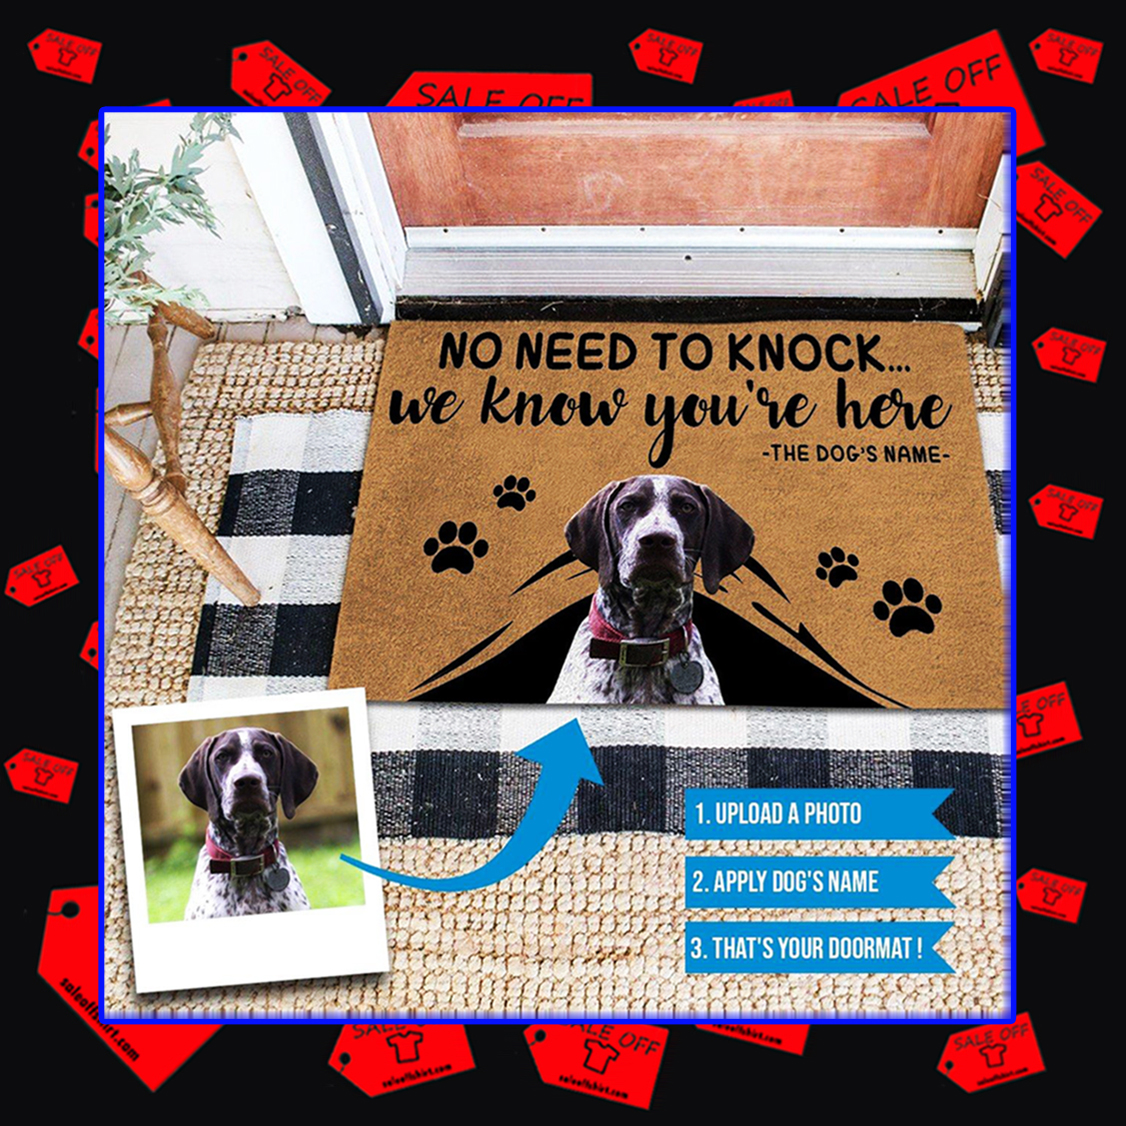 We Know You're Here Pet Name Personalized Doormat - picture 2